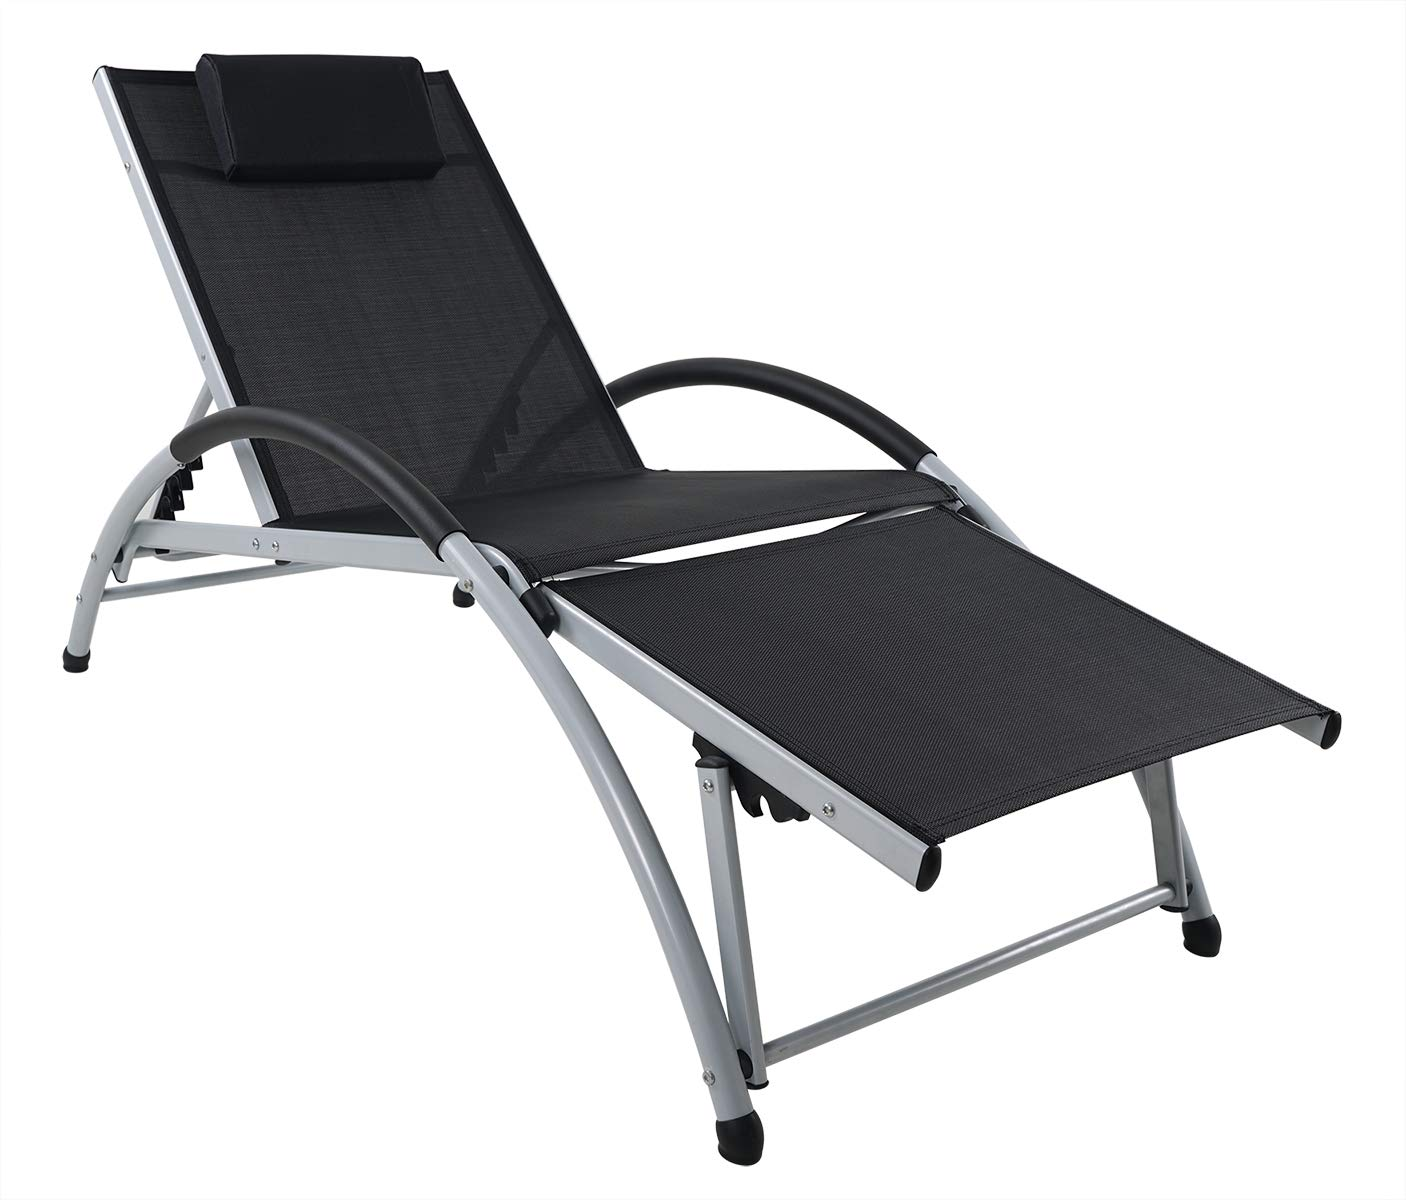 Amazon Com Ukeacn Patio Chaise Lounge Lawn Chair Adjustable